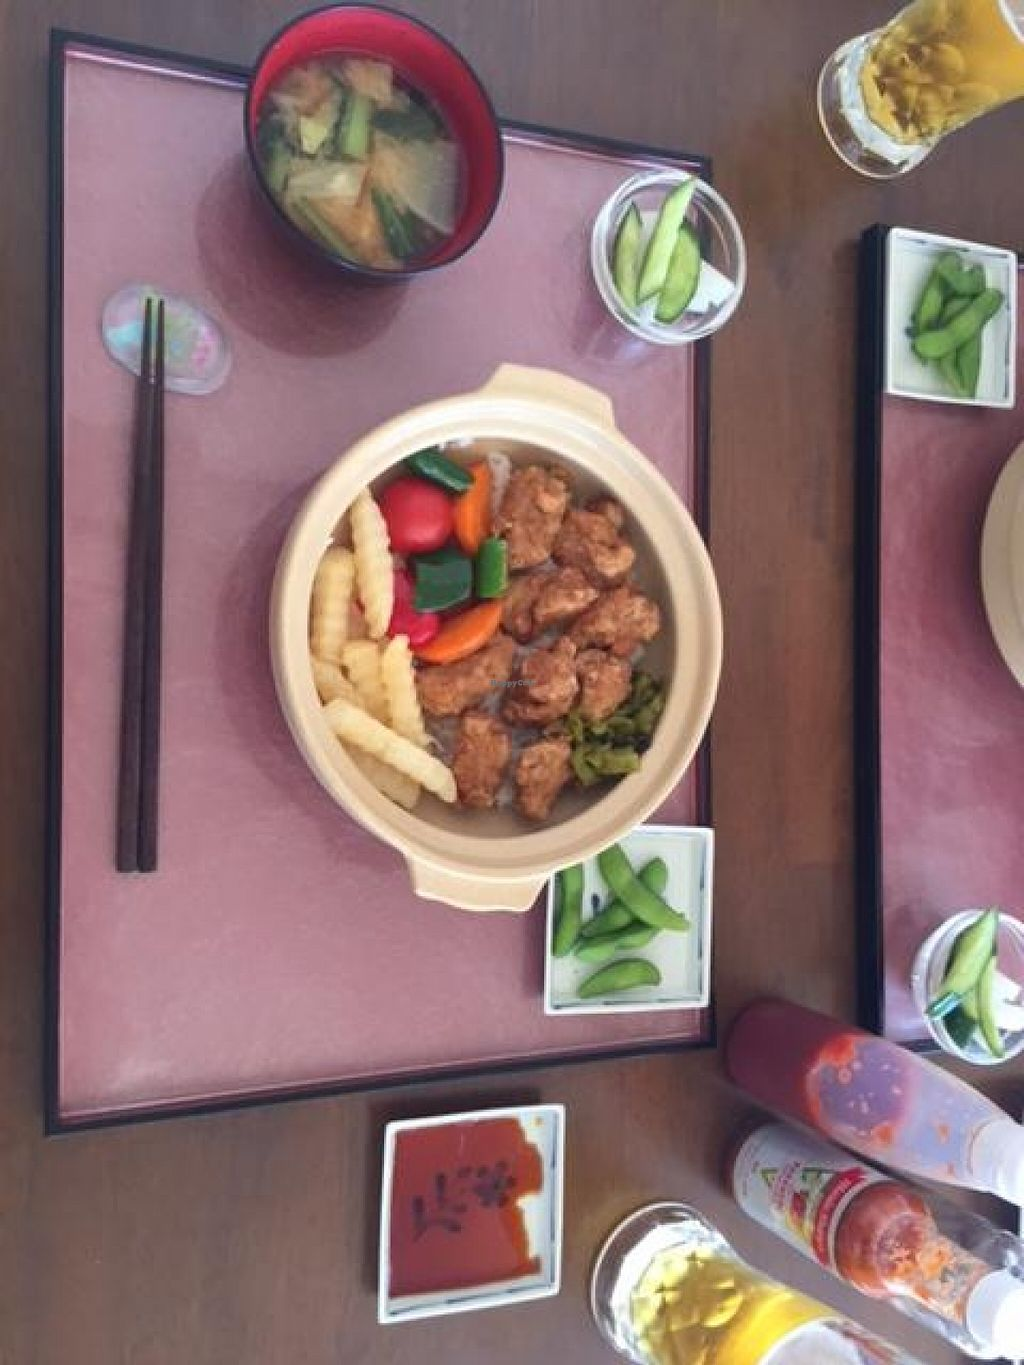 """Photo of CLOSED: Prunus  by <a href=""""/members/profile/GardenTiger"""">GardenTiger</a> <br/>Rice Bowl with Soy-Chicken <br/> October 2, 2015  - <a href='/contact/abuse/image/32552/119782'>Report</a>"""